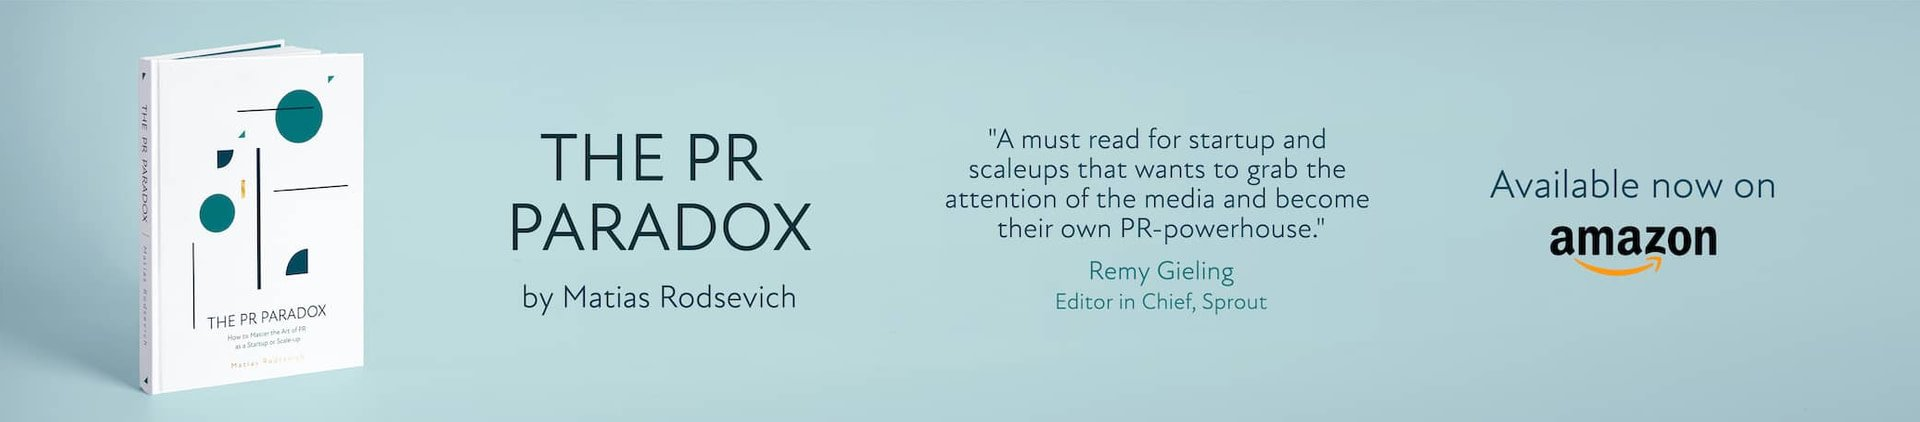 Banner of The PR Paradox, the public relations ebook written by Matias Rodsevich